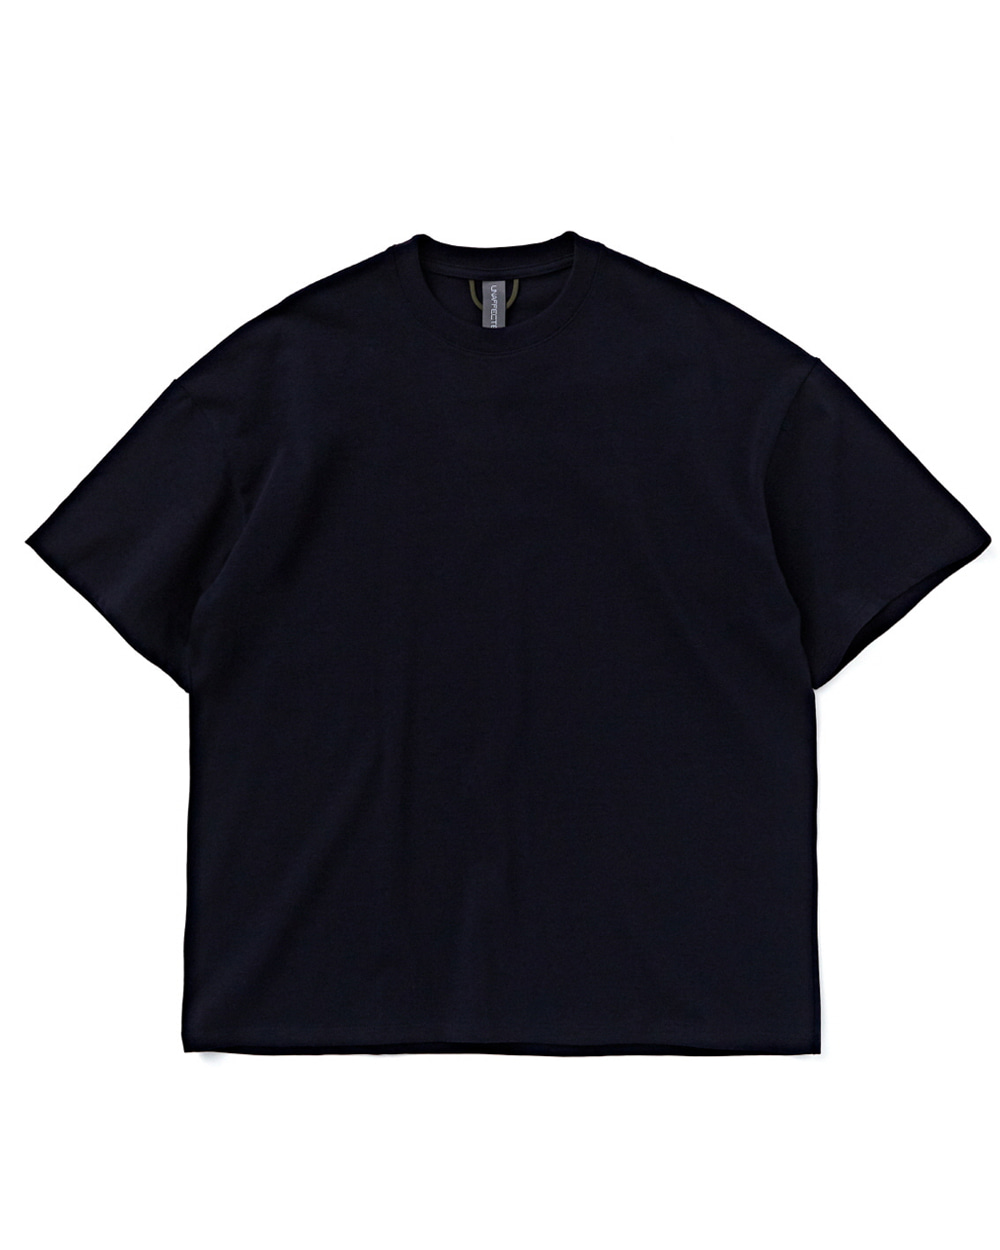 언어펙티드 LOGO LABEL T-SHIRT (Navy)